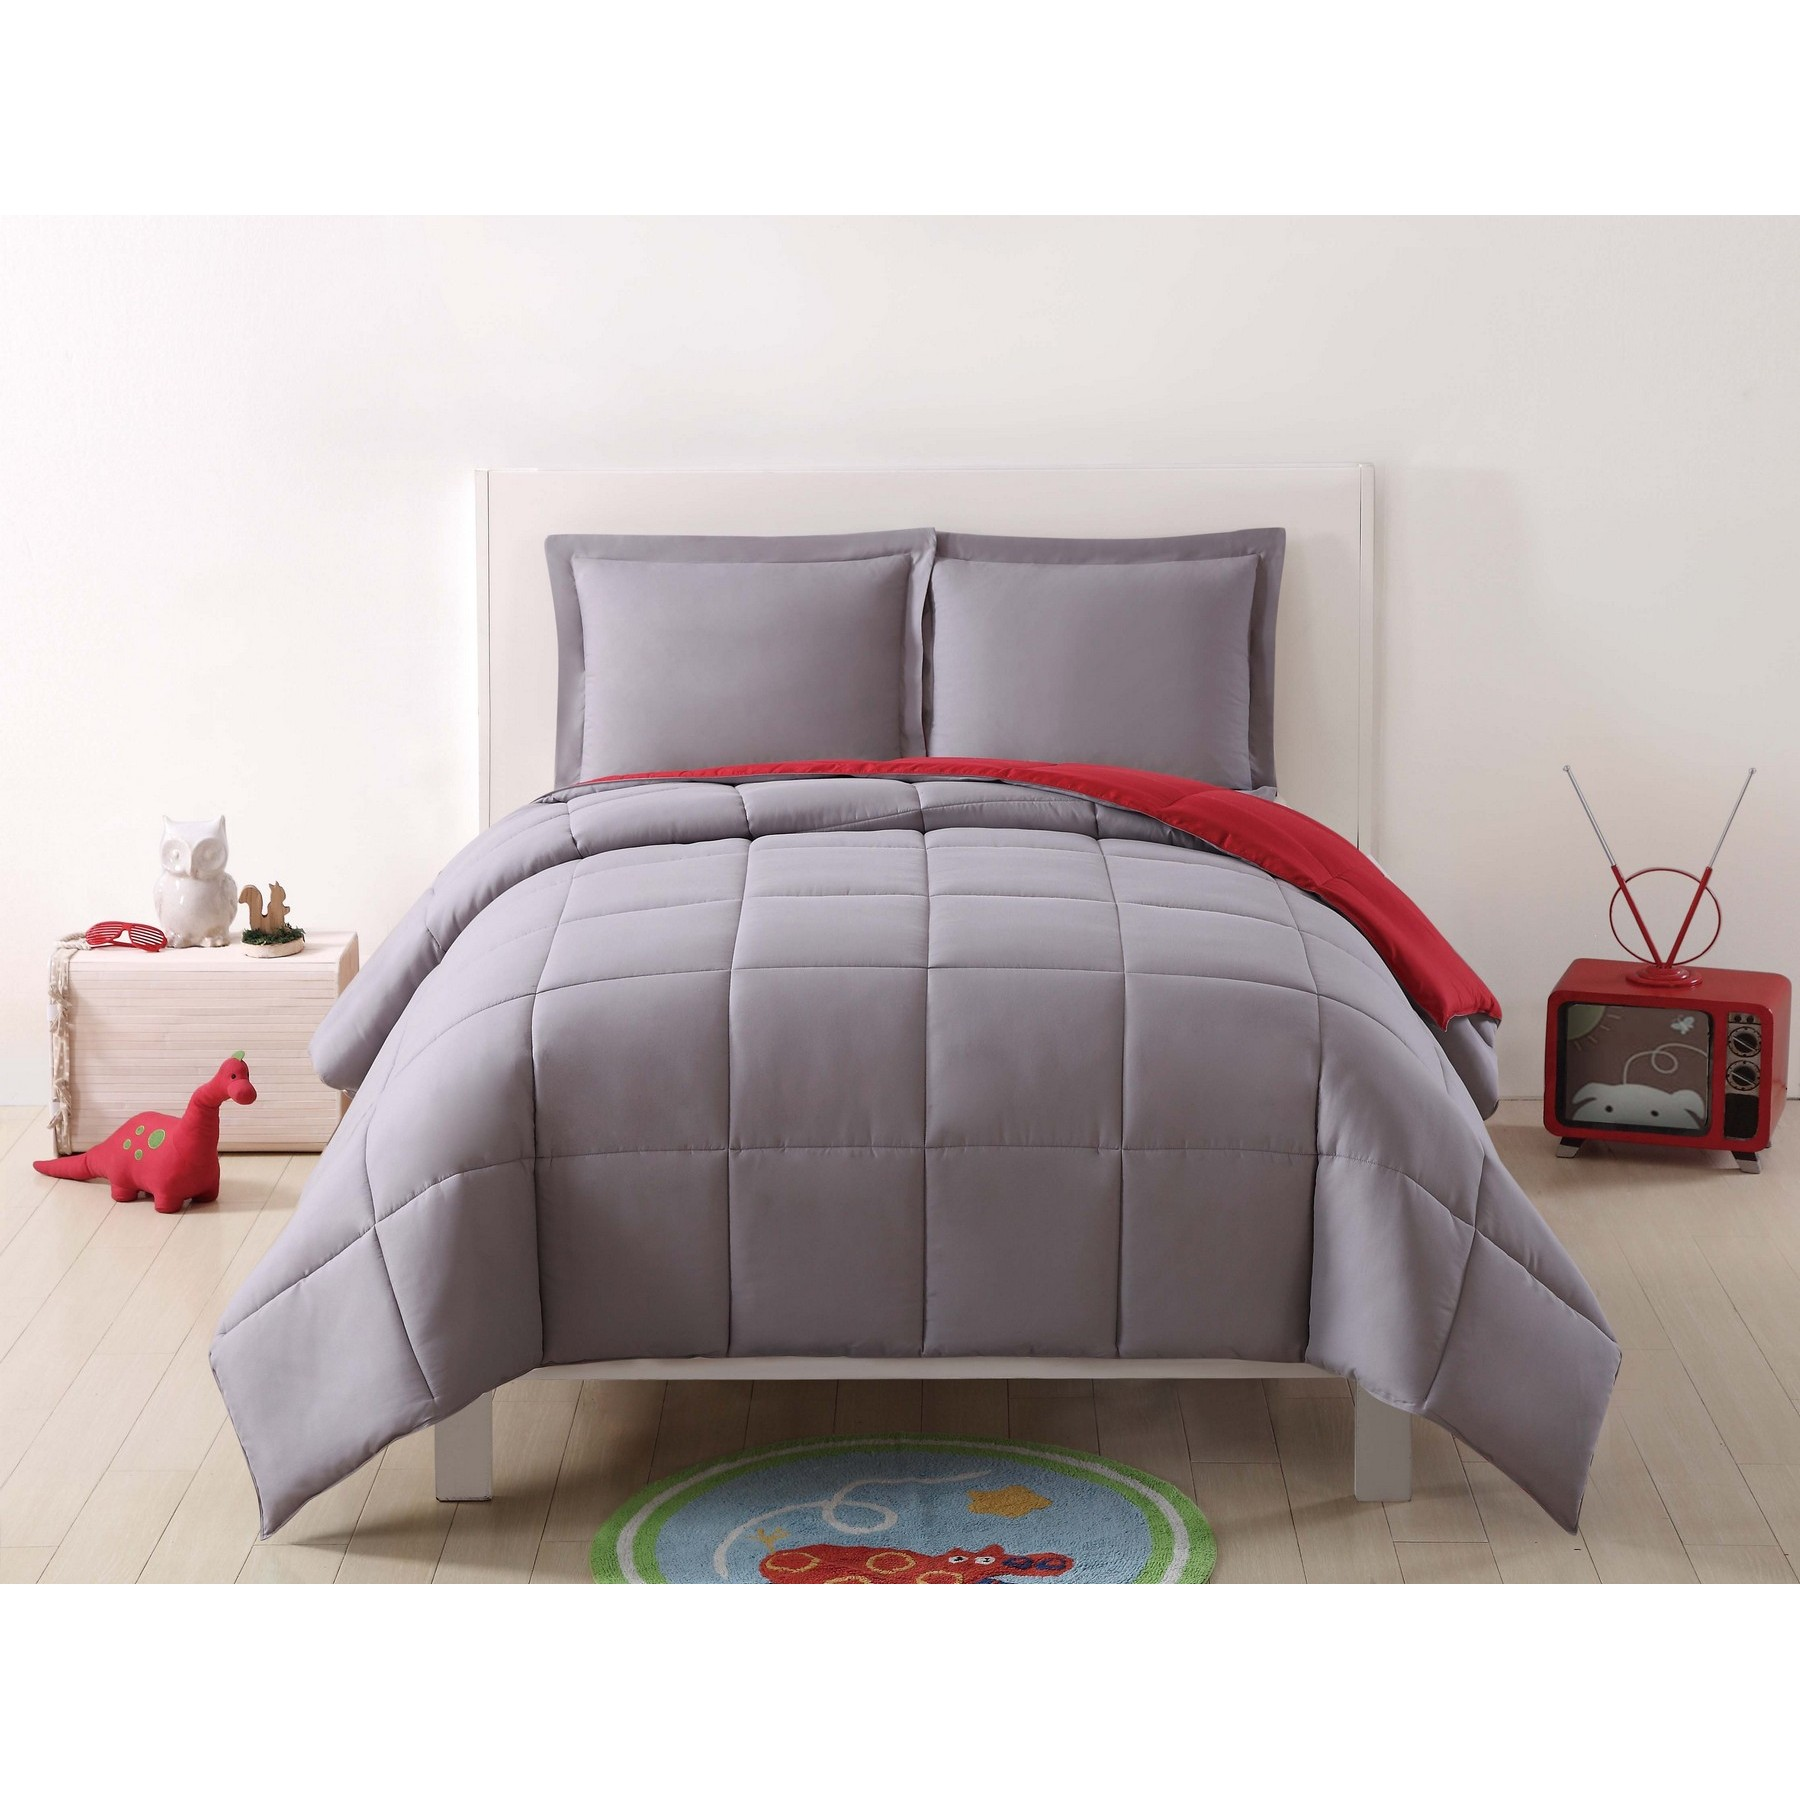 Laura Hart Kids Solid Grey and Red Reversible 3 Piece Twin XL Comforter Set